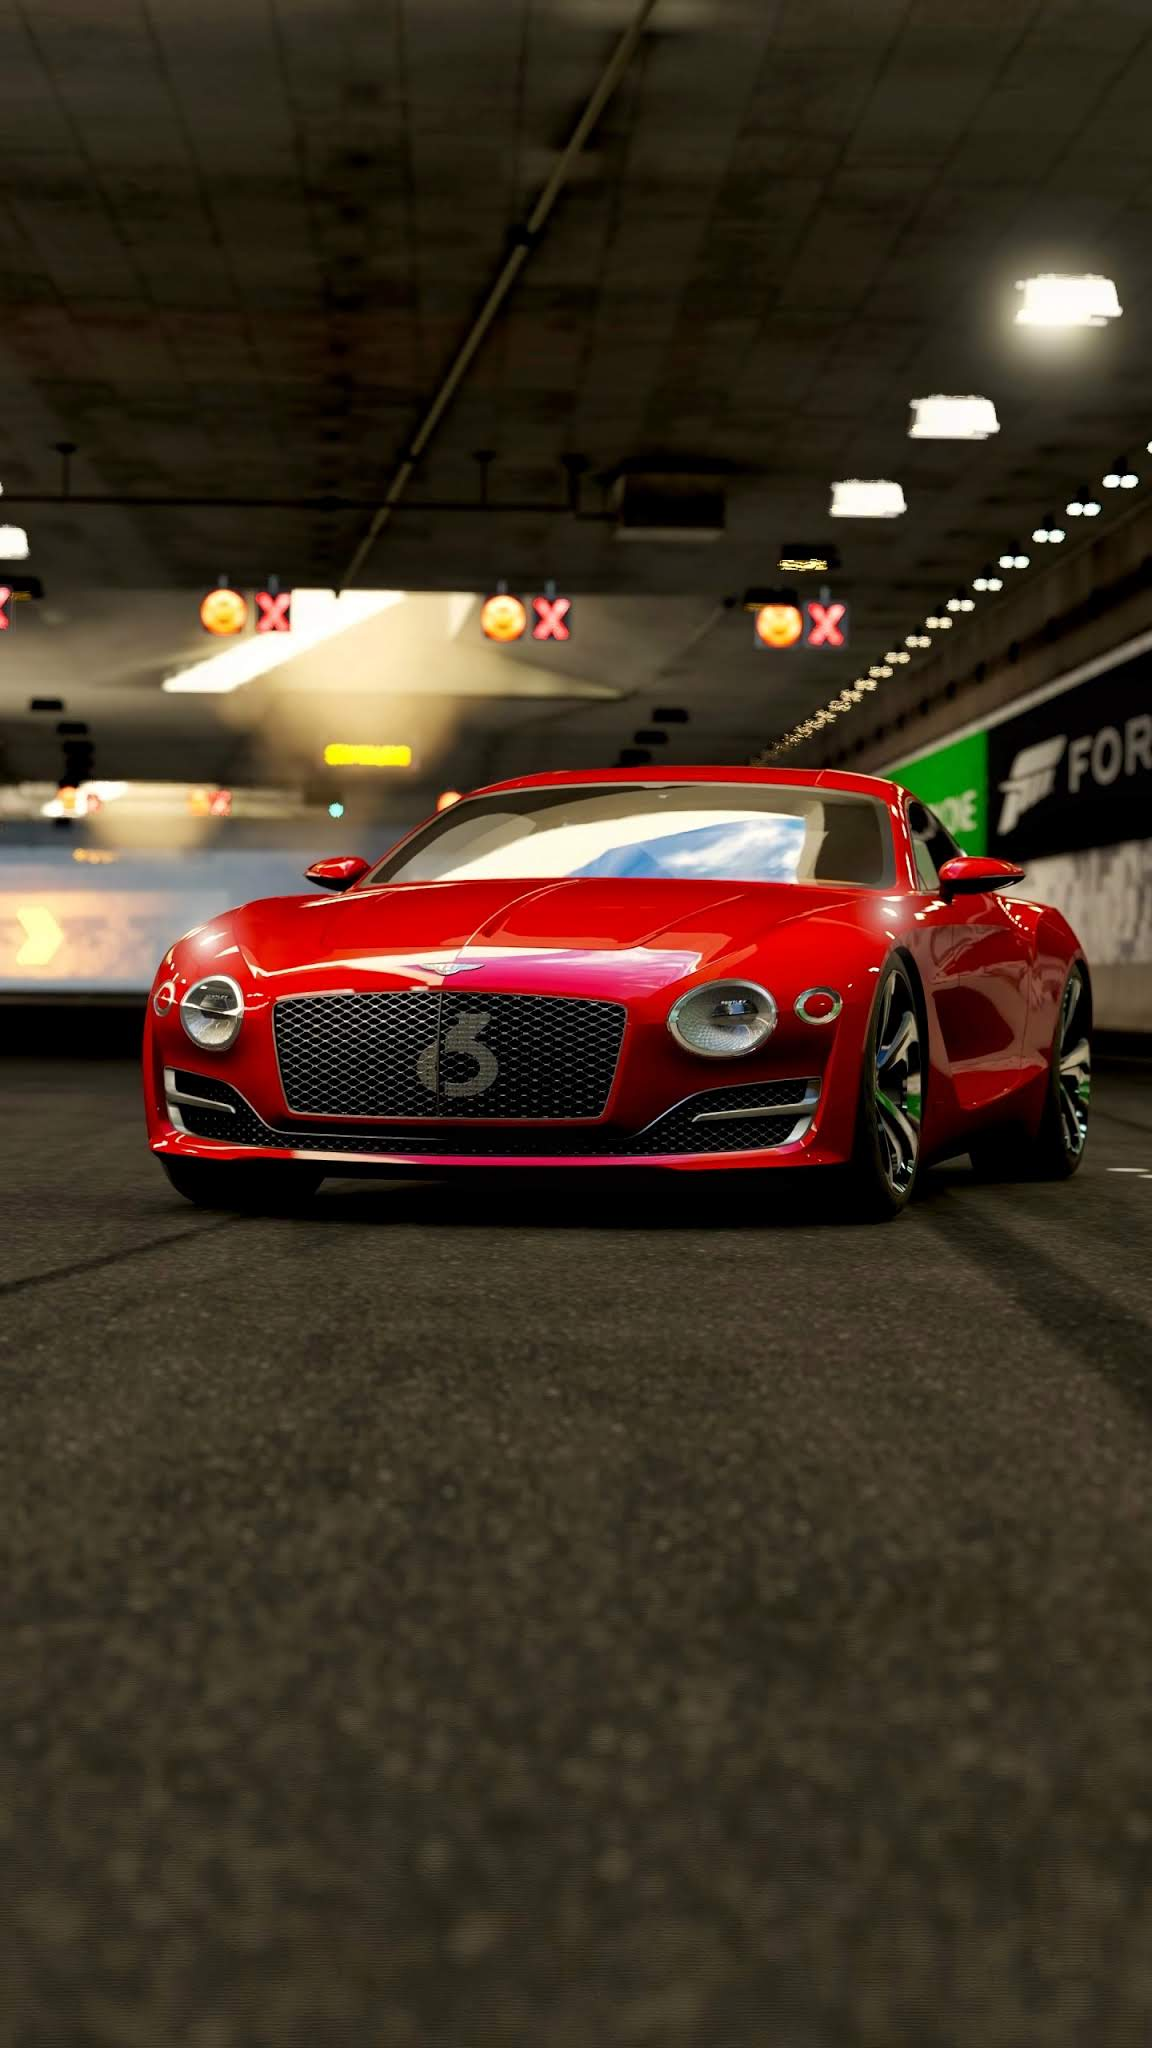 Red Bentley Continental GT Car Wallpaper